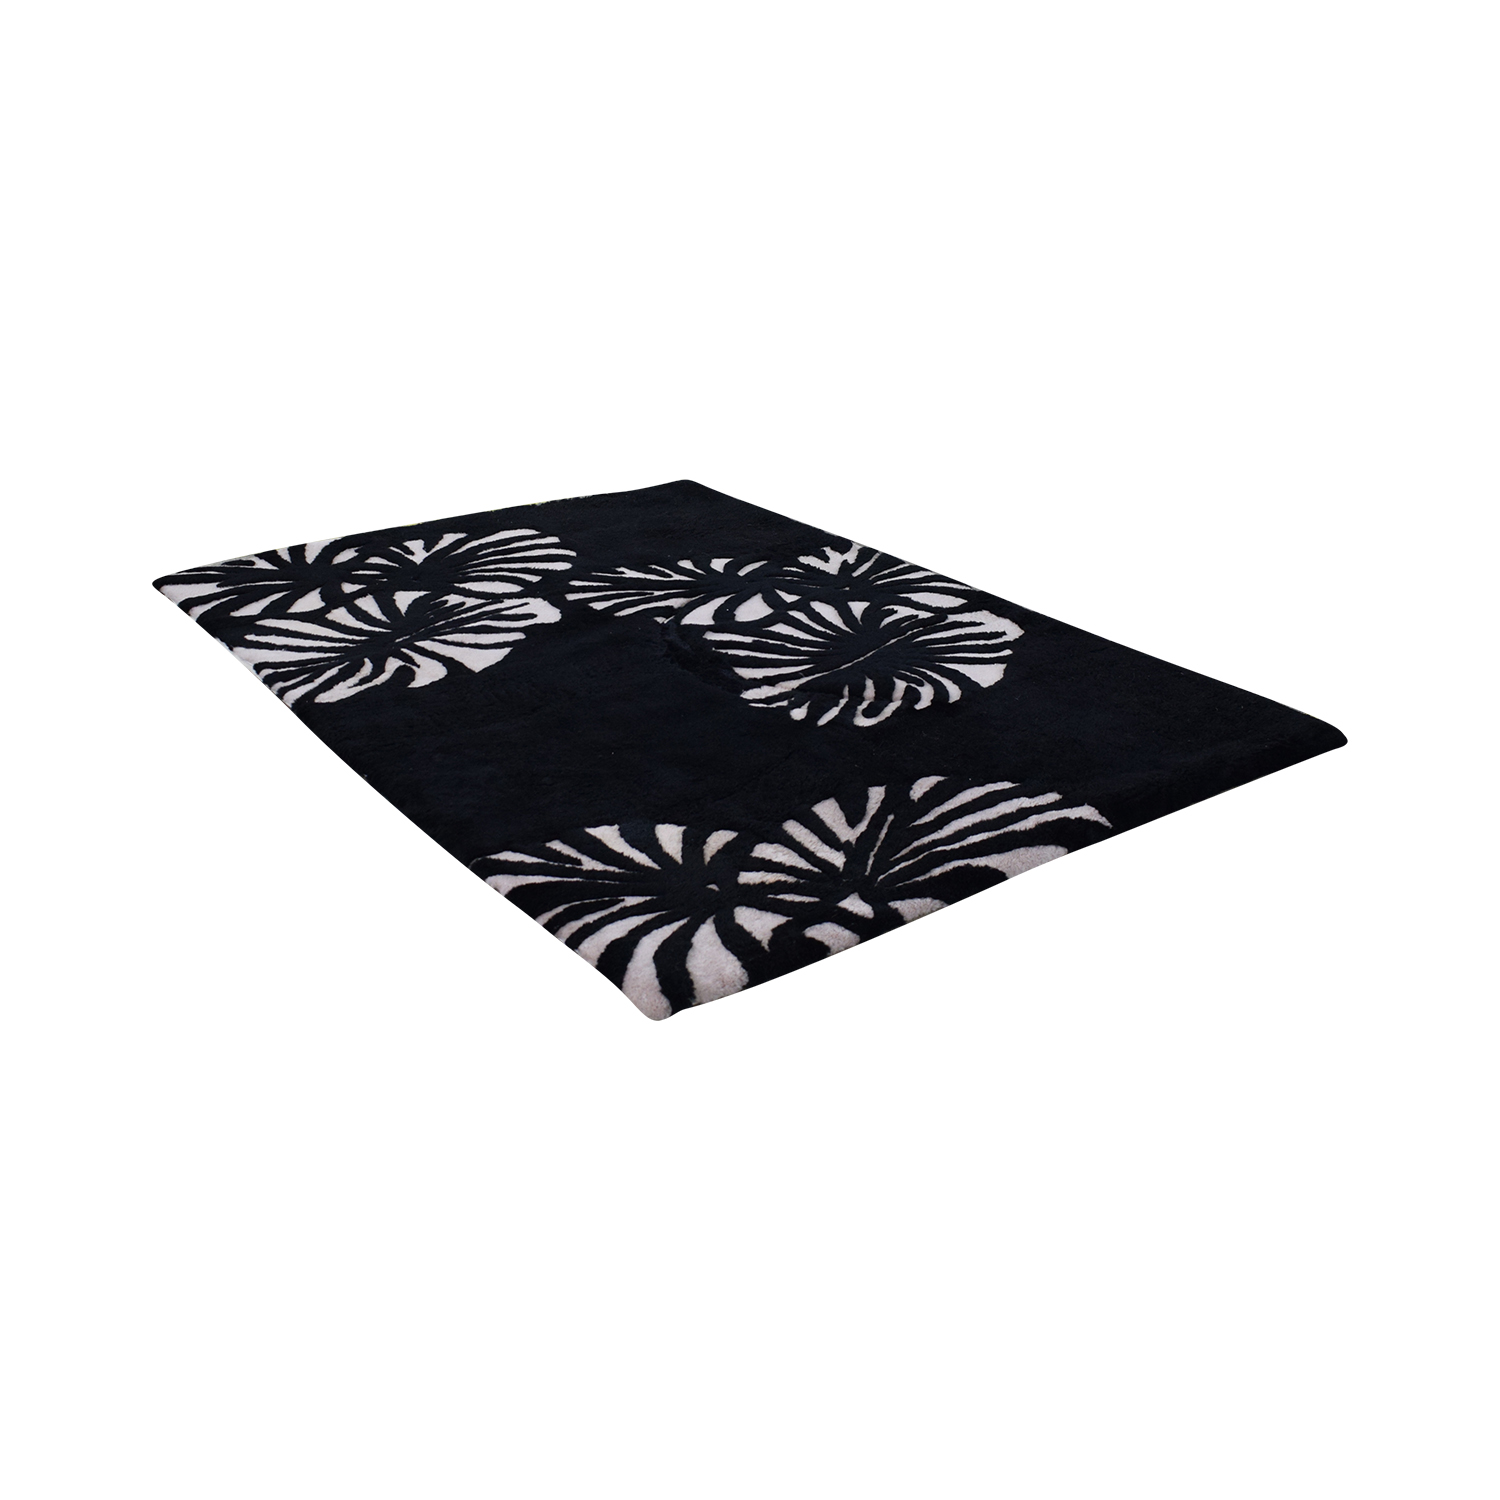 shop Auskin Patterned Area Rug Auskin